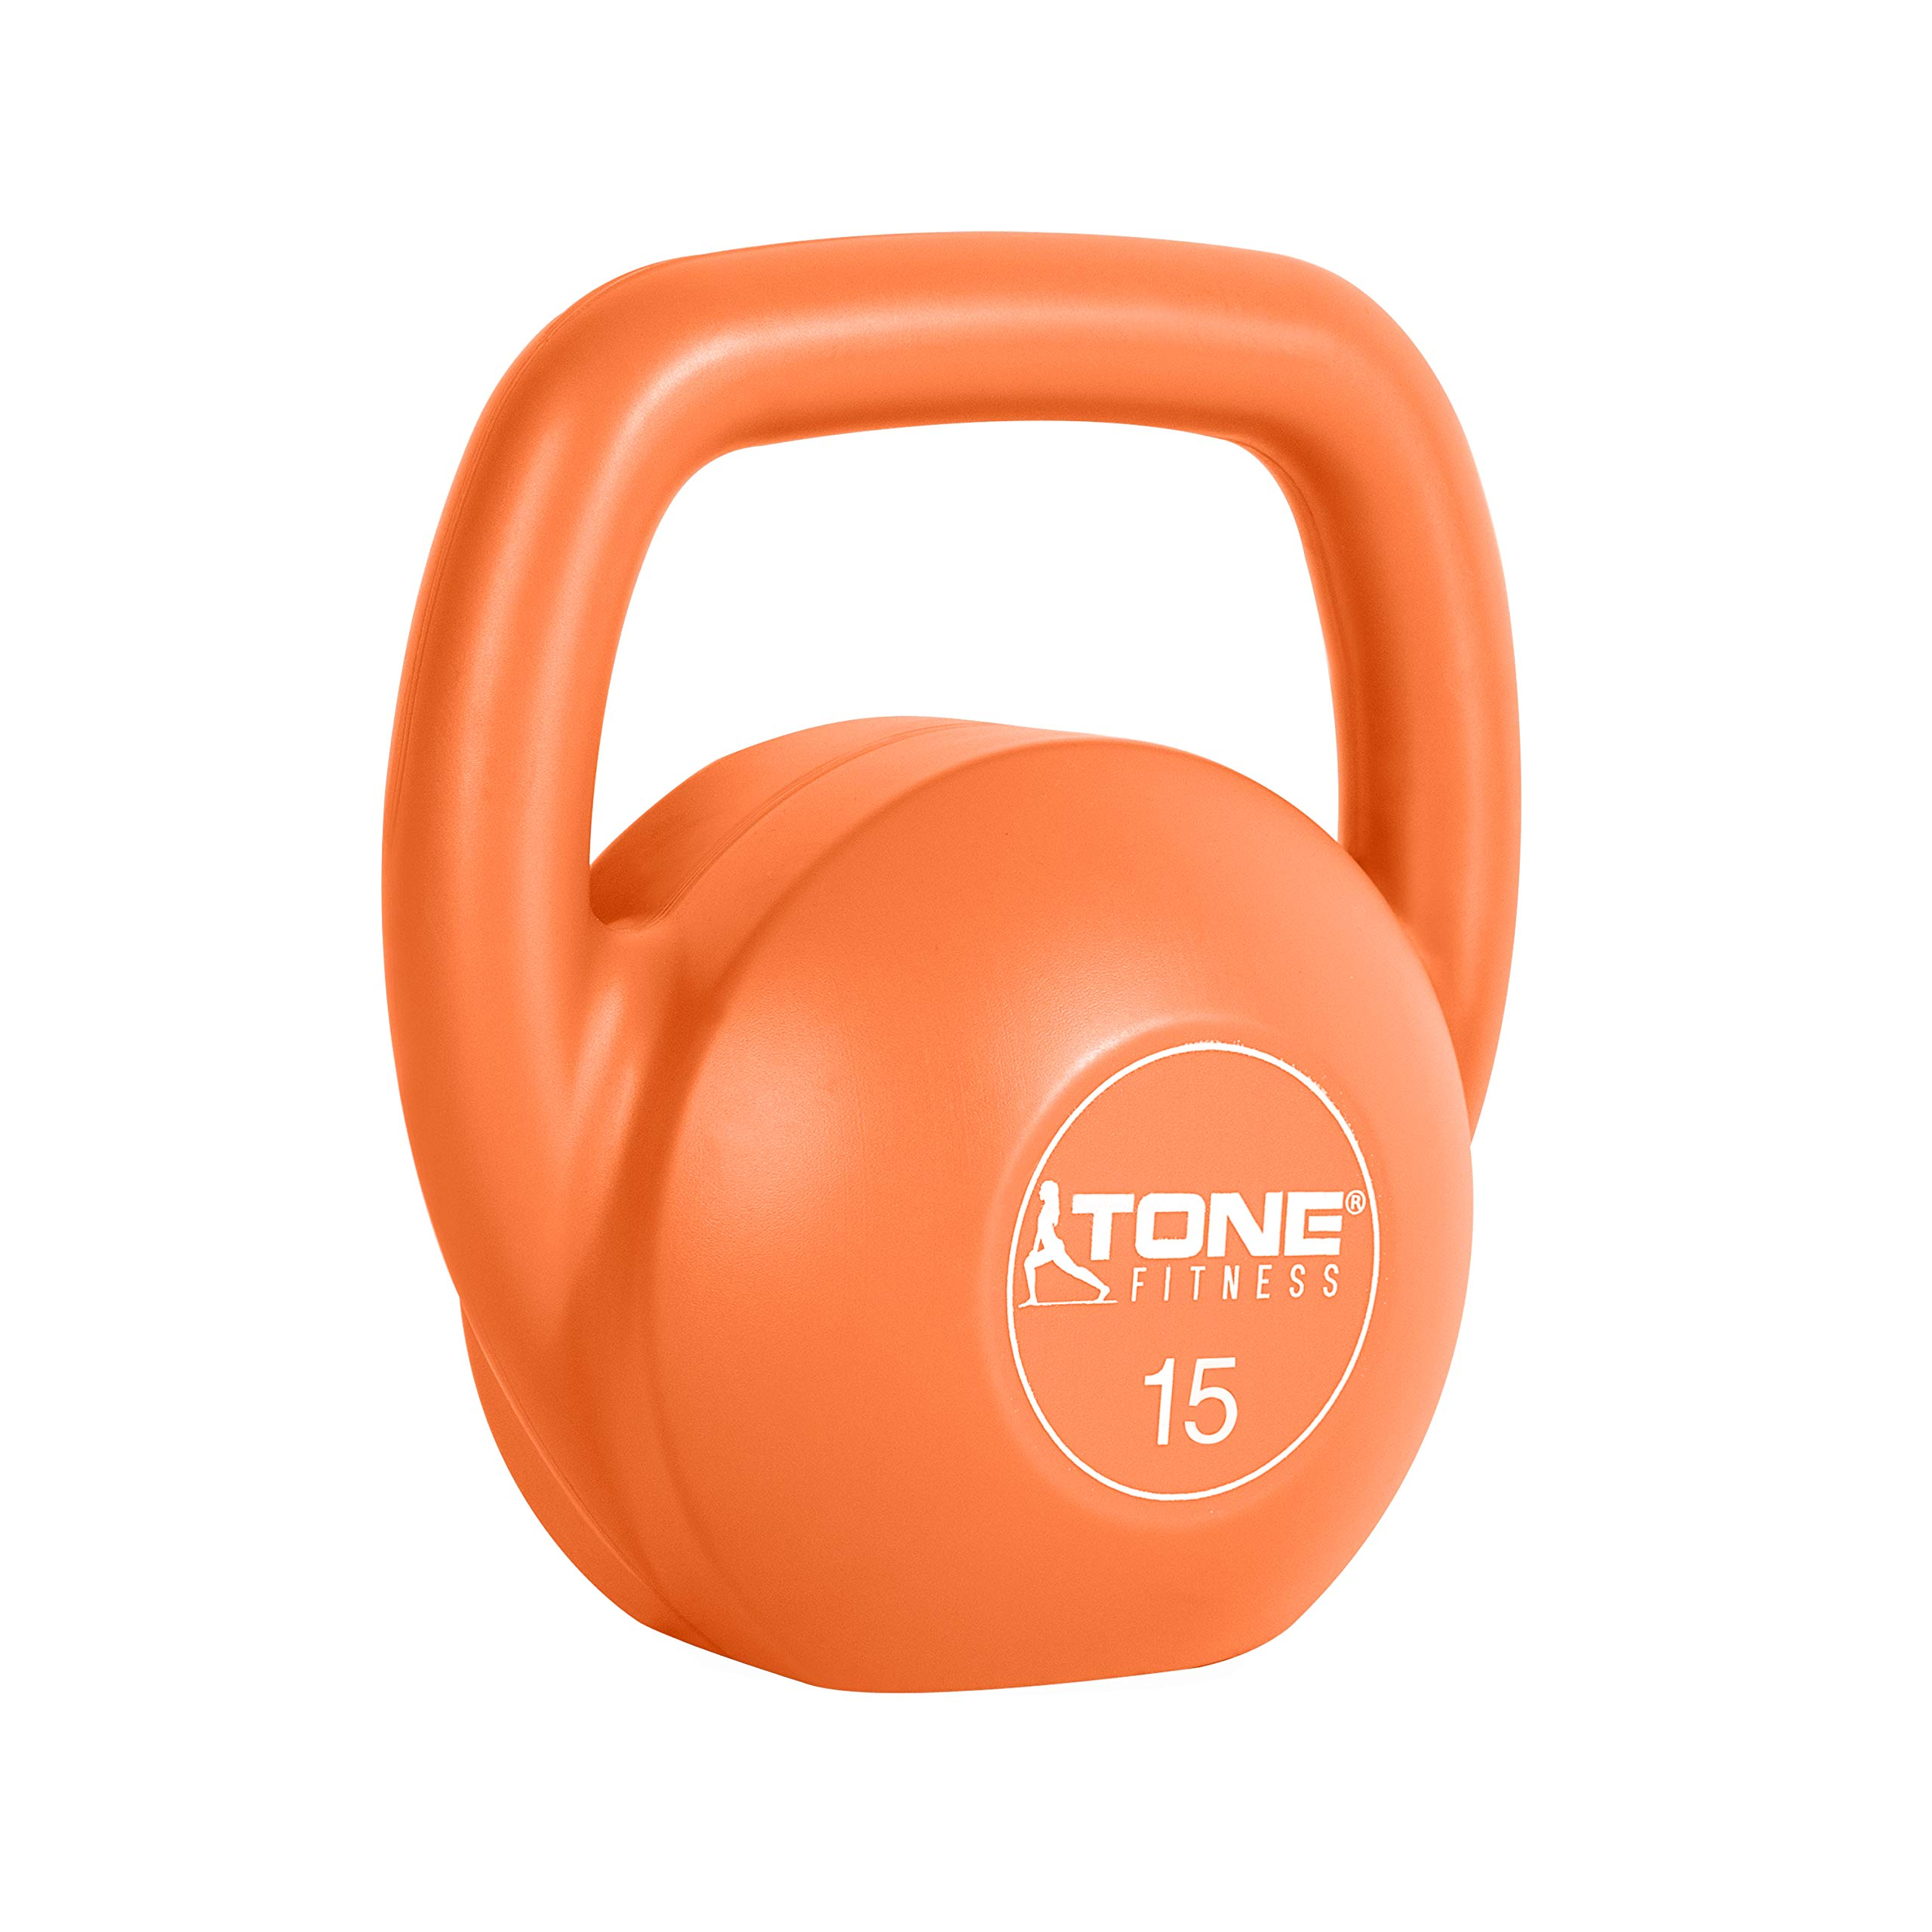 Tone Fitness Vinyl Kettlebell, 15-Pound, Orange by Tone Fitness (Image #3)